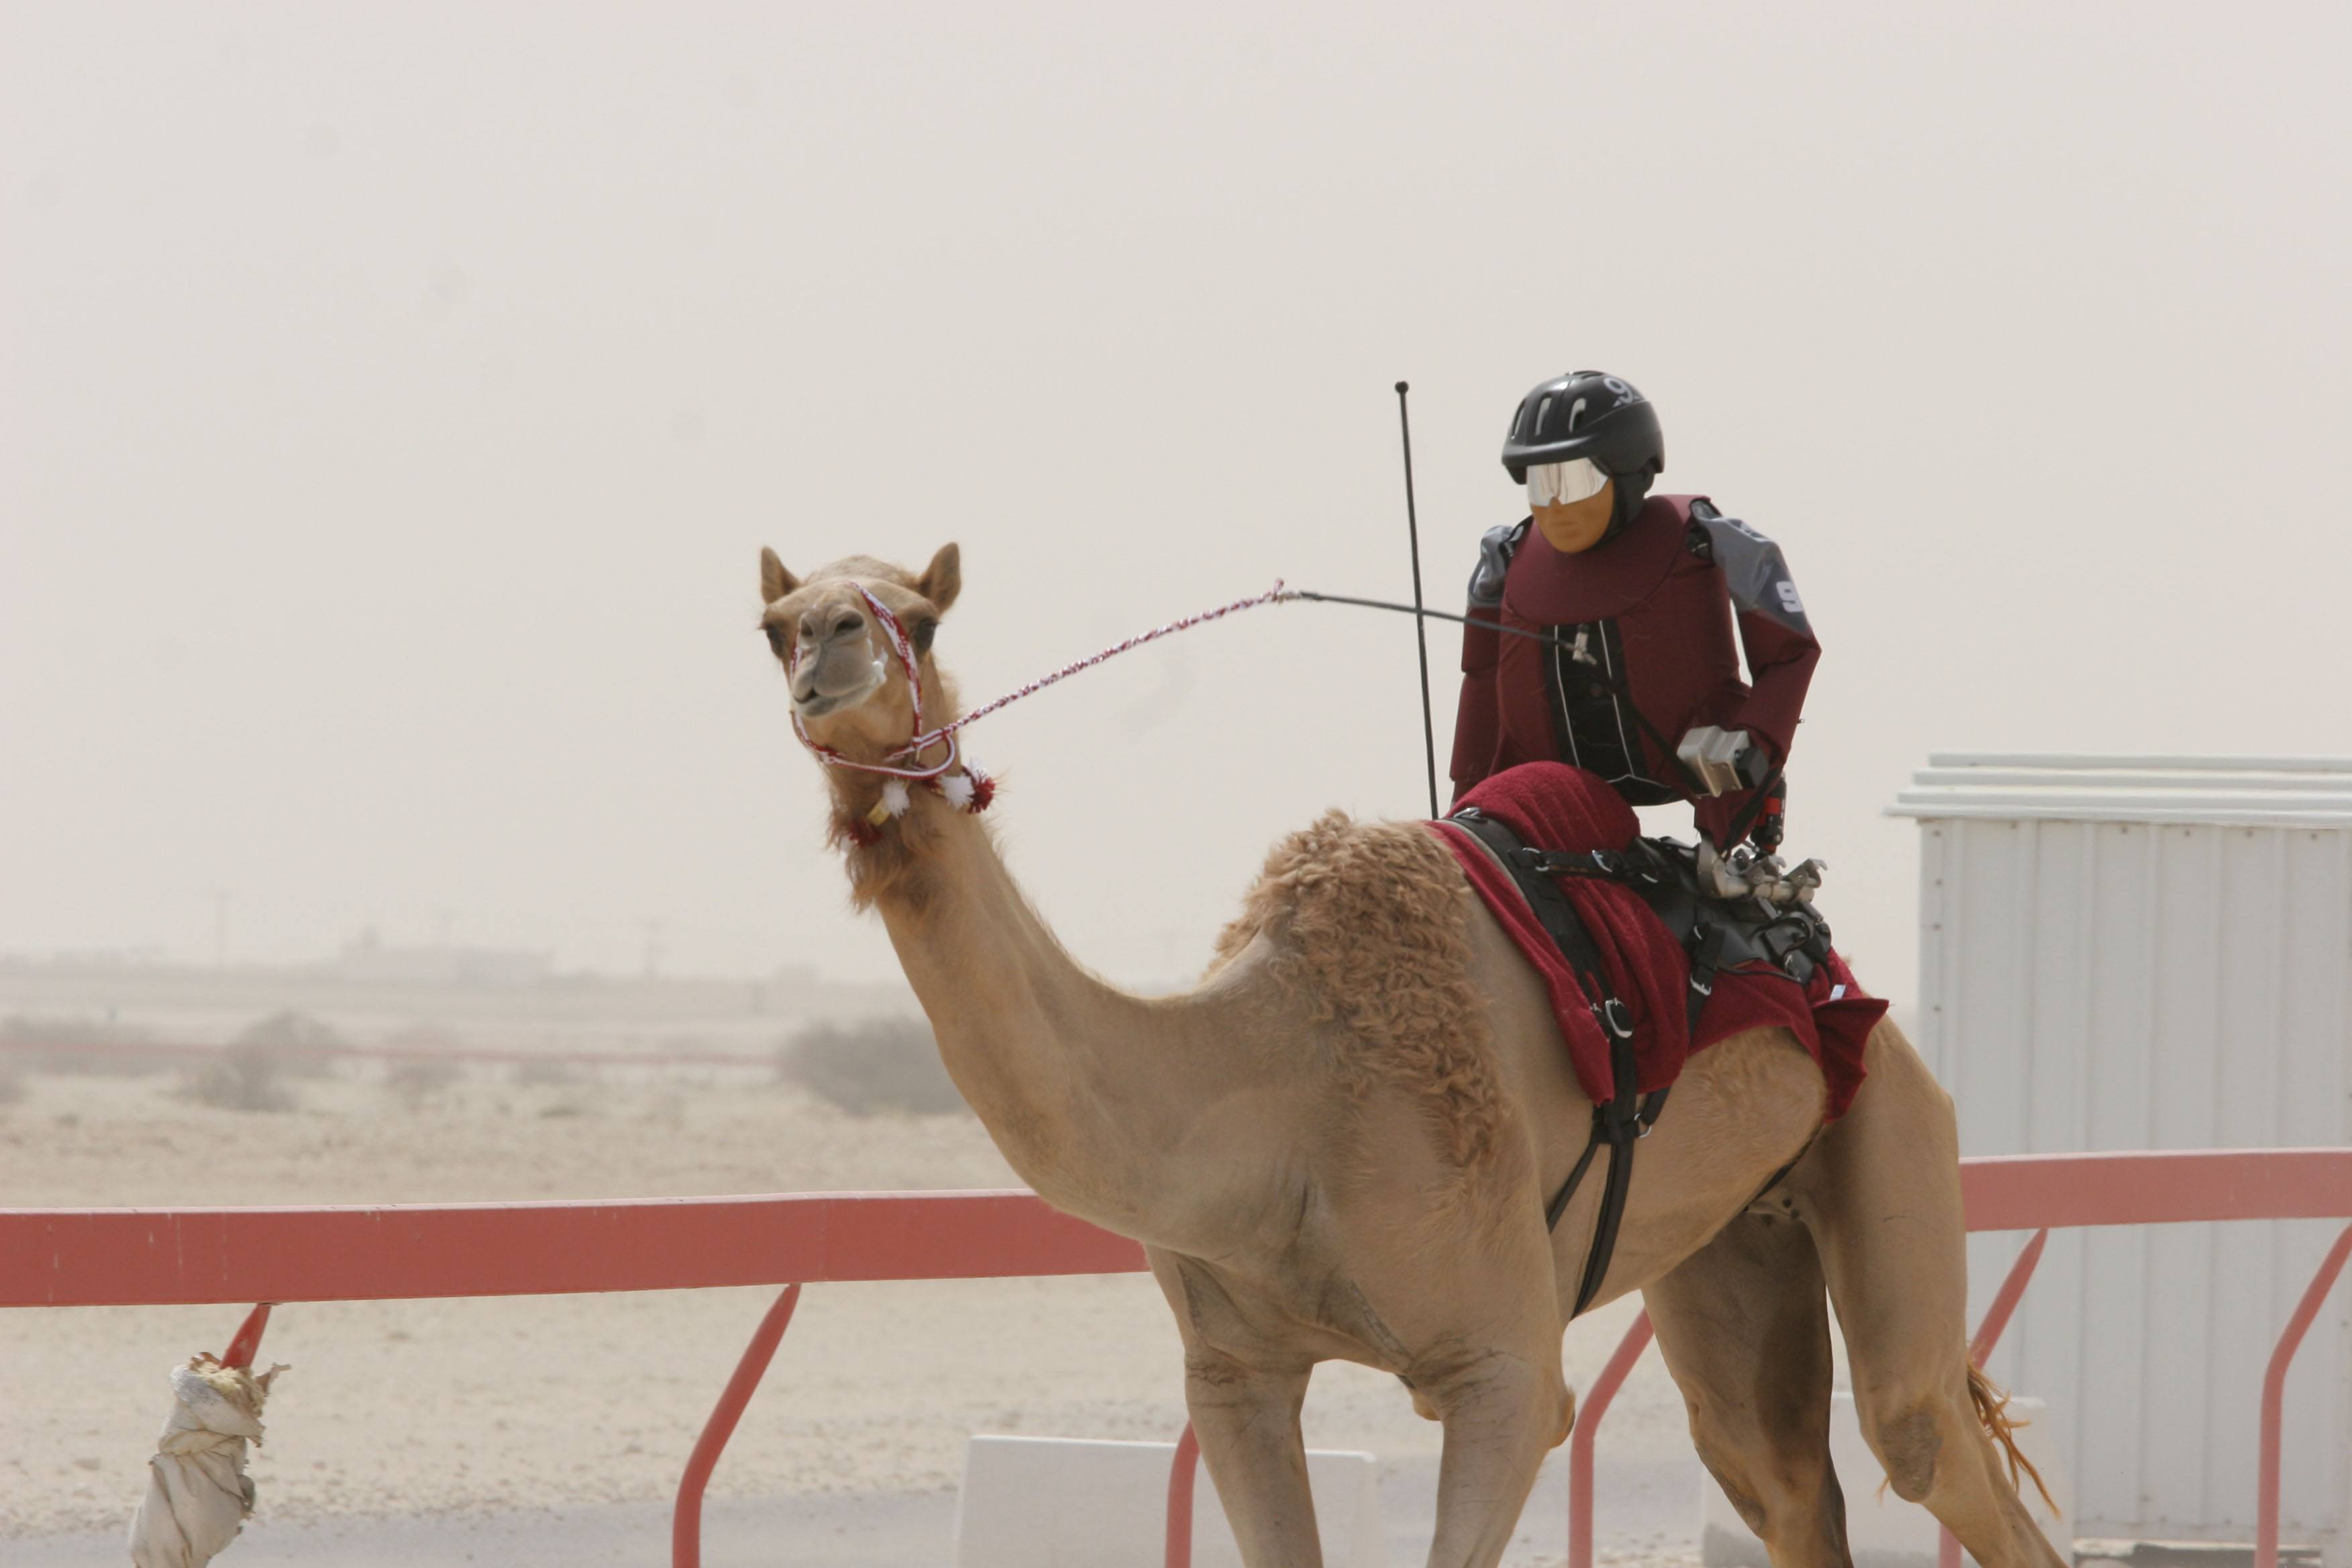 Wipping Machine Mail: Towards A More Benign Camel Racing Robot